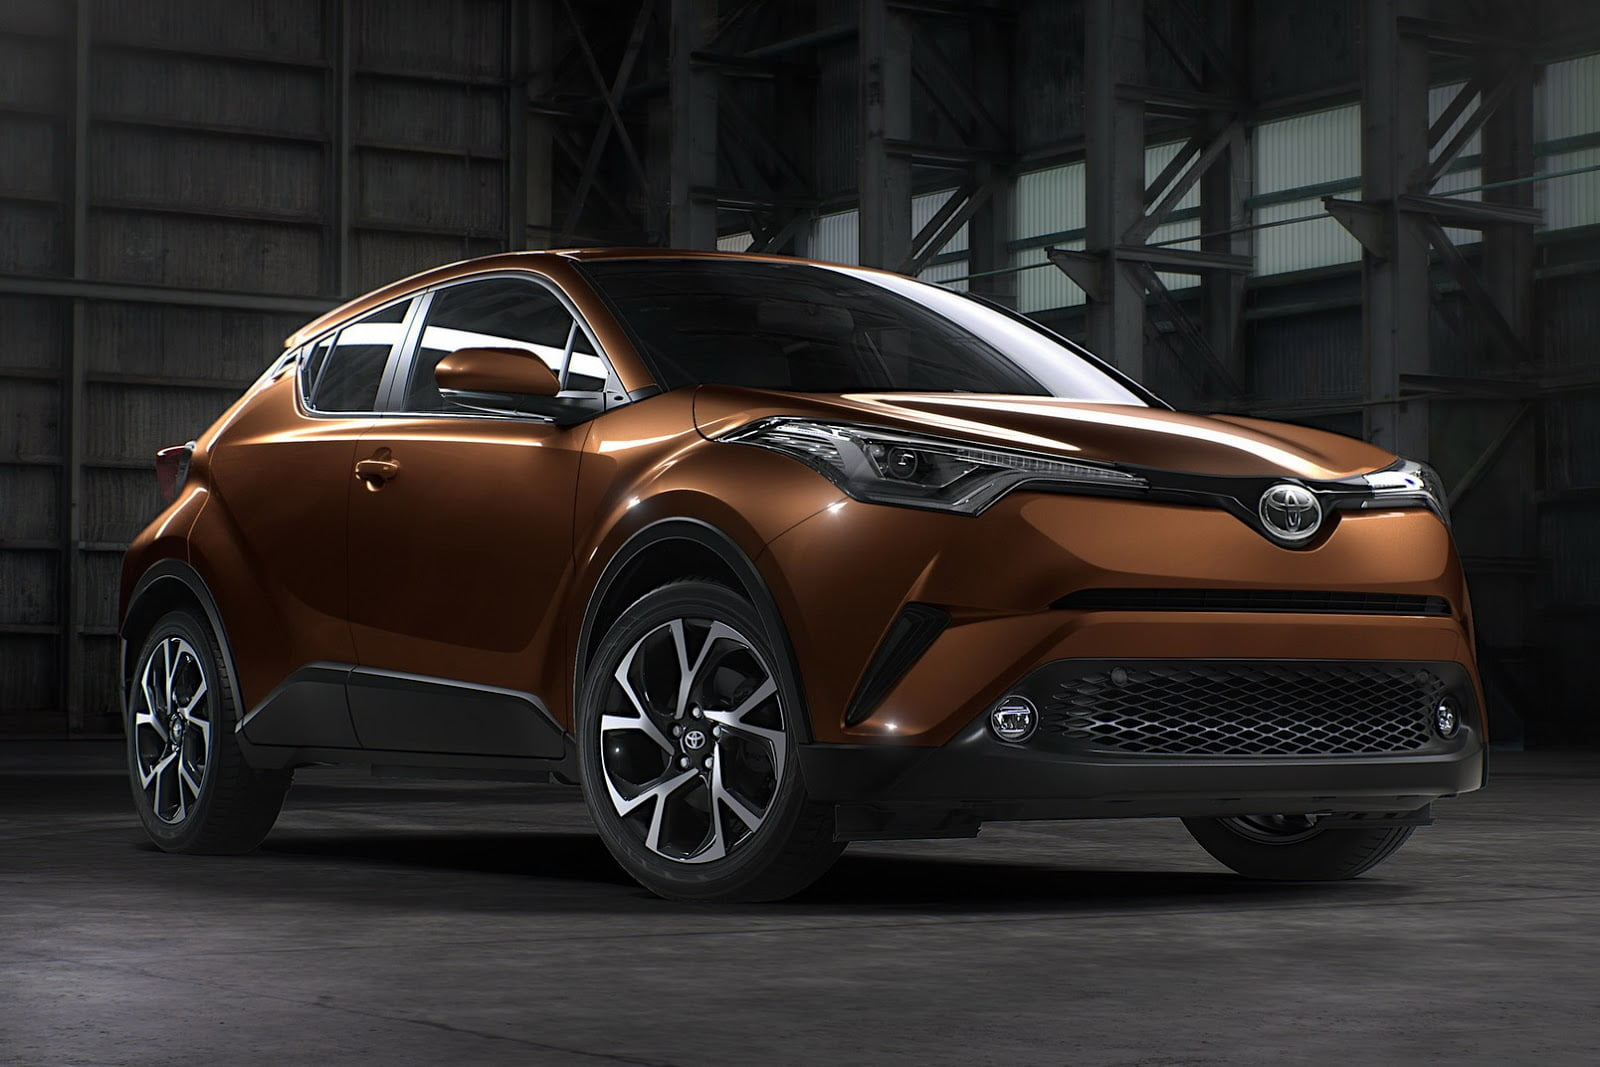 toyota c-hr en color marron